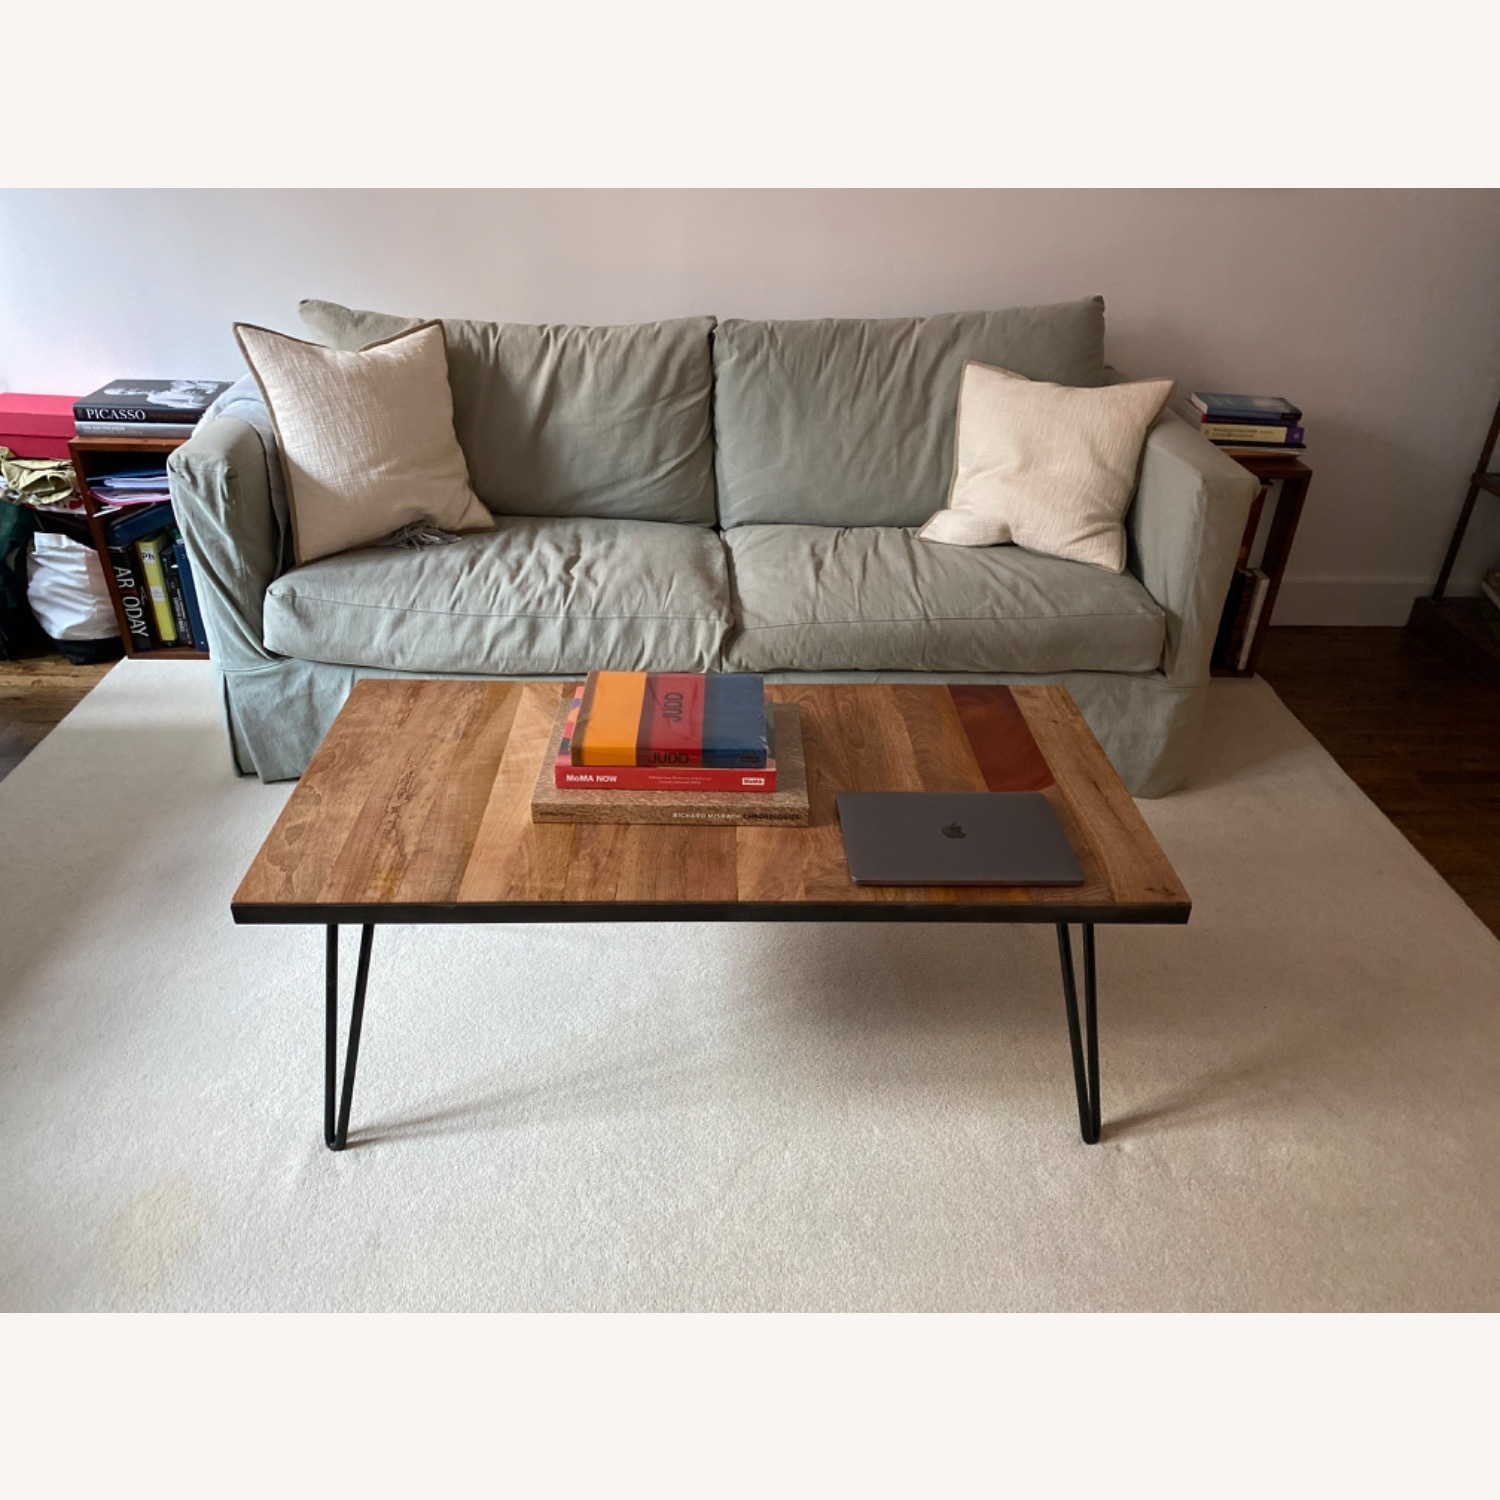 Crate and Barrel Sea Foam Green Couch - image-2